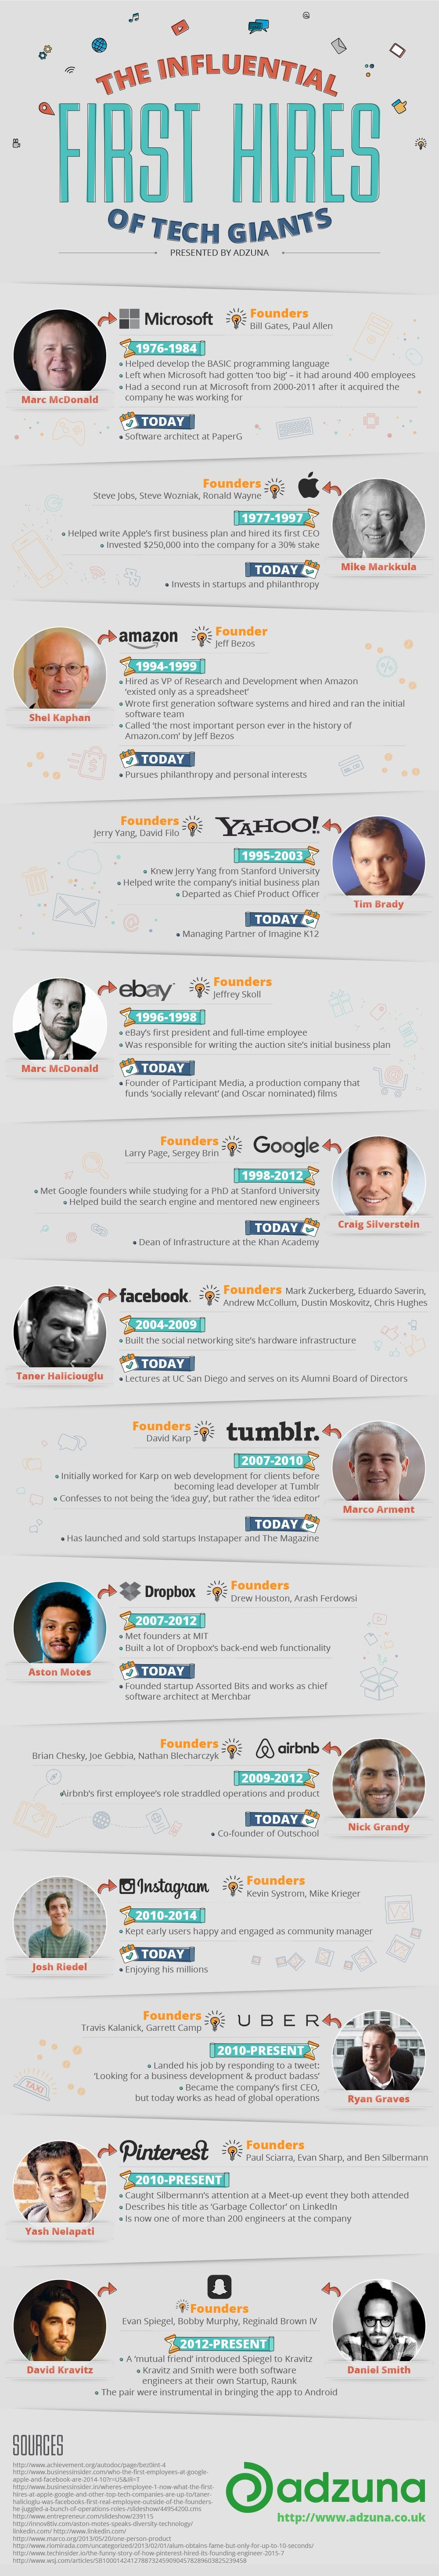 The Influential First Hires of Tech Giants